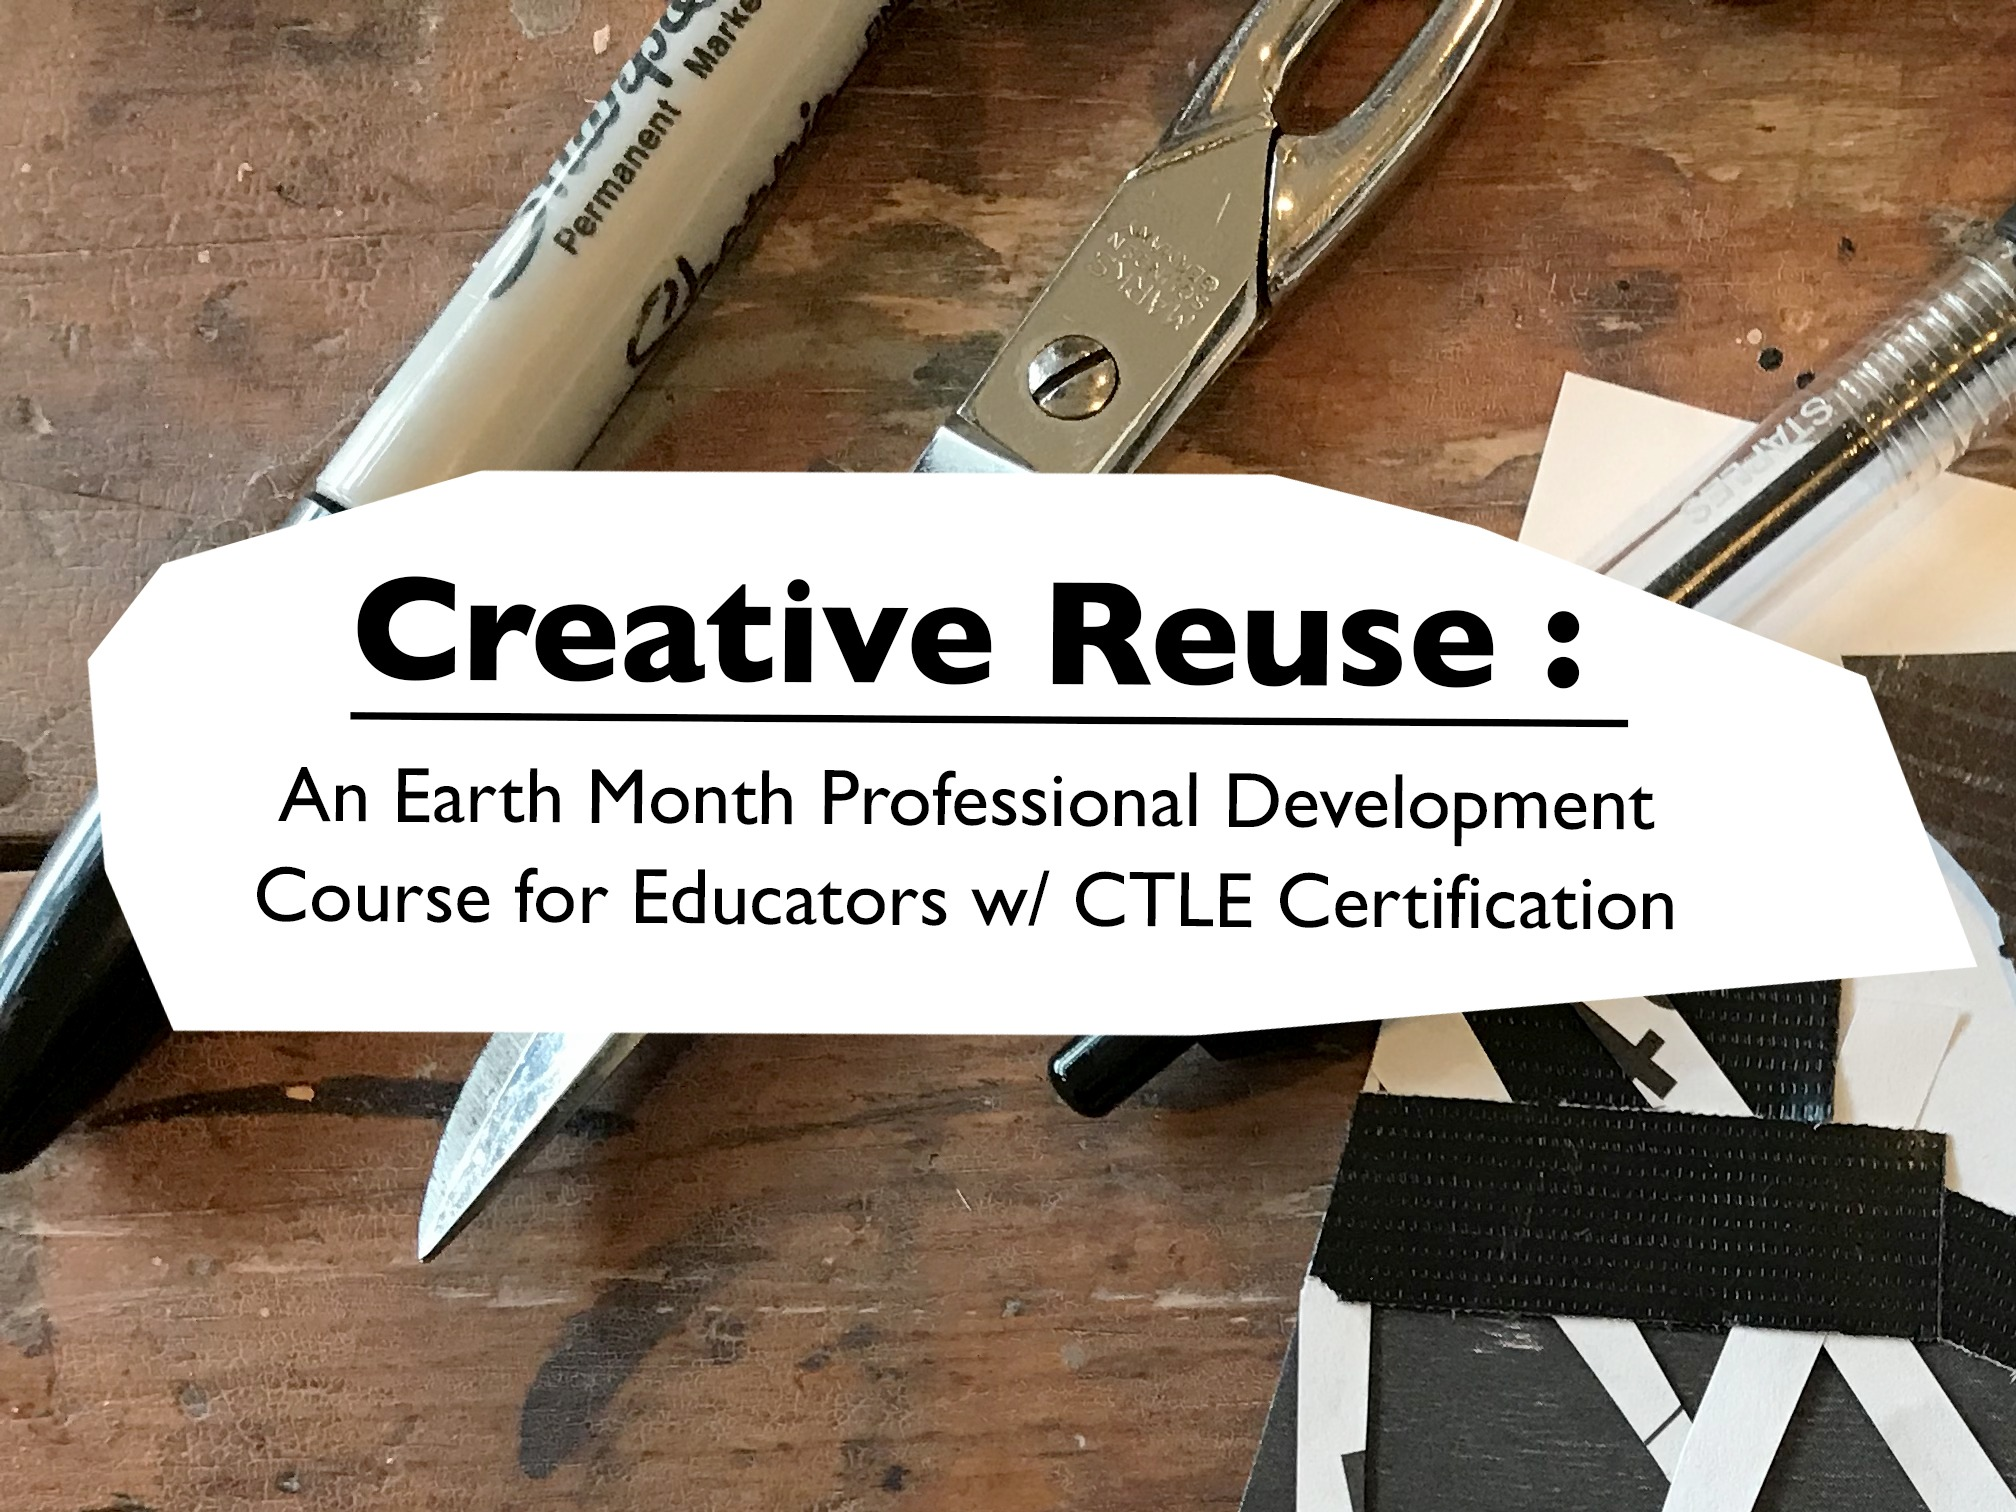 """The text """"Creative Reuse: An Earth Month Professional Development Course w/ CTLE Certification"""" transposed over the background photo of a sharpie, scissor, and pen on a wooden table."""